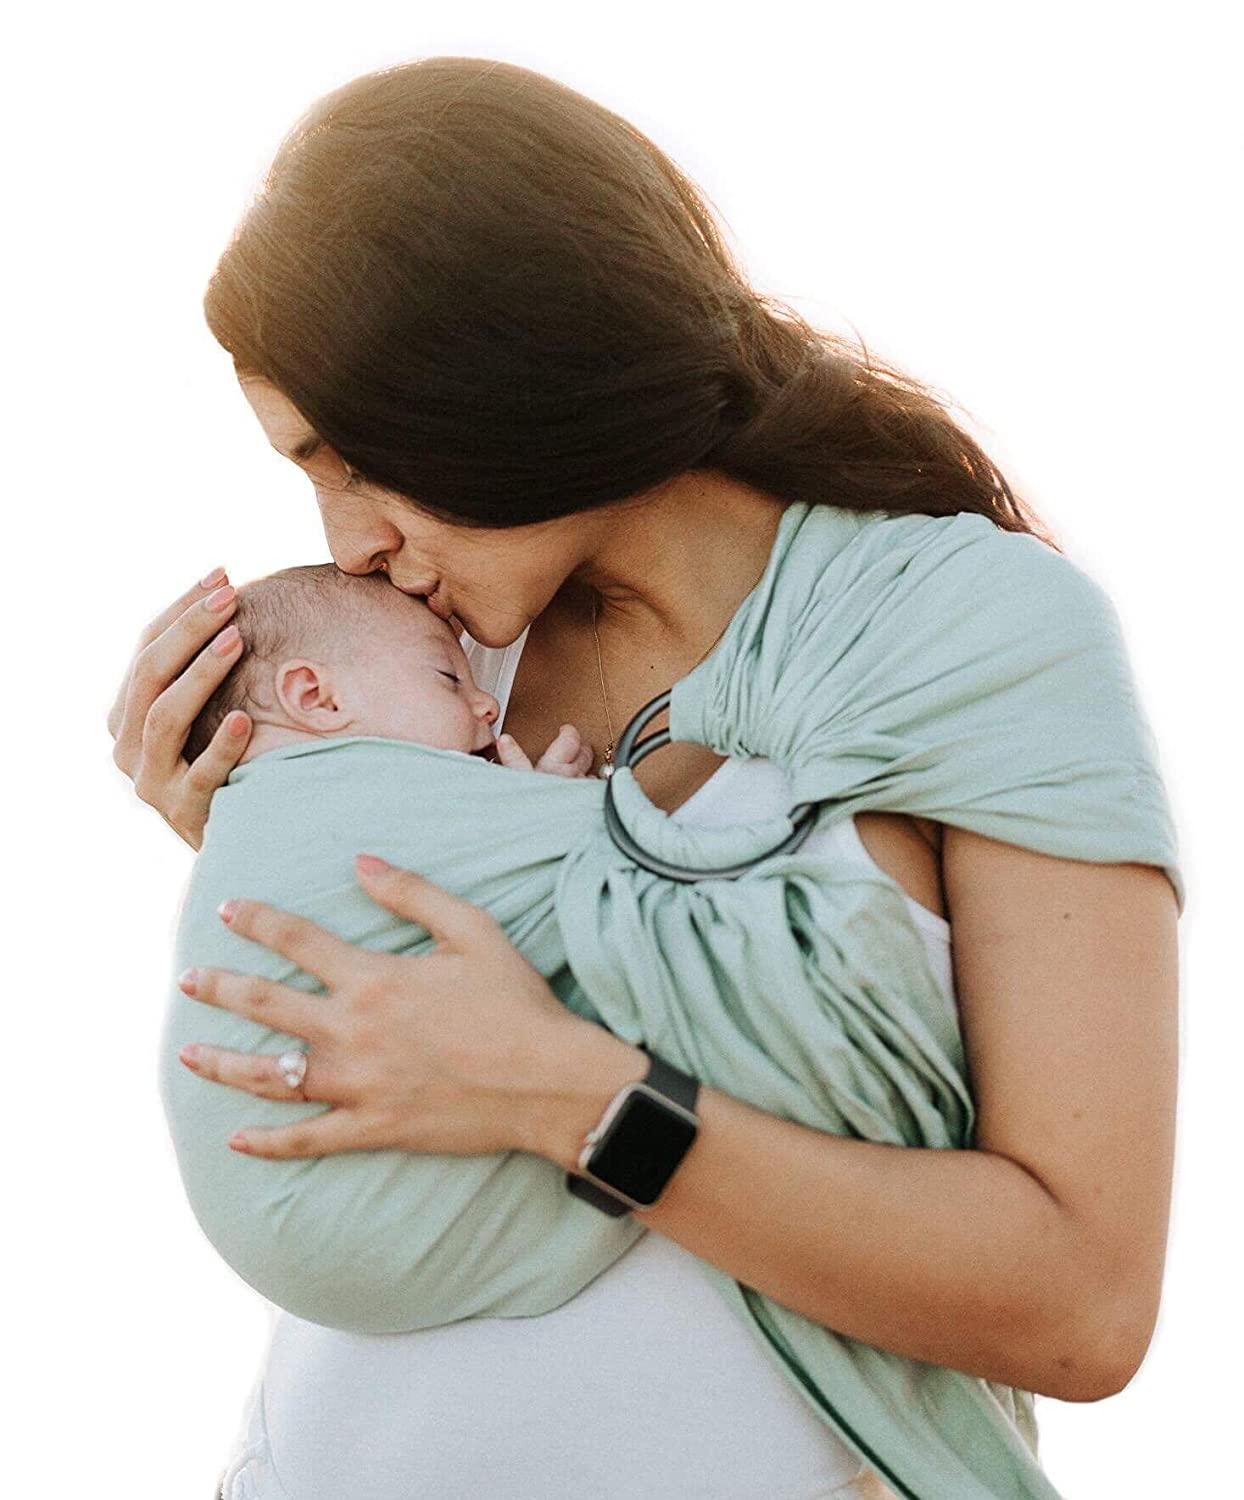 3acb77d7f57 Amazon.com   Luxury Ring Sling Baby Carrier - Extra Soft Bamboo   Linen  Fabric